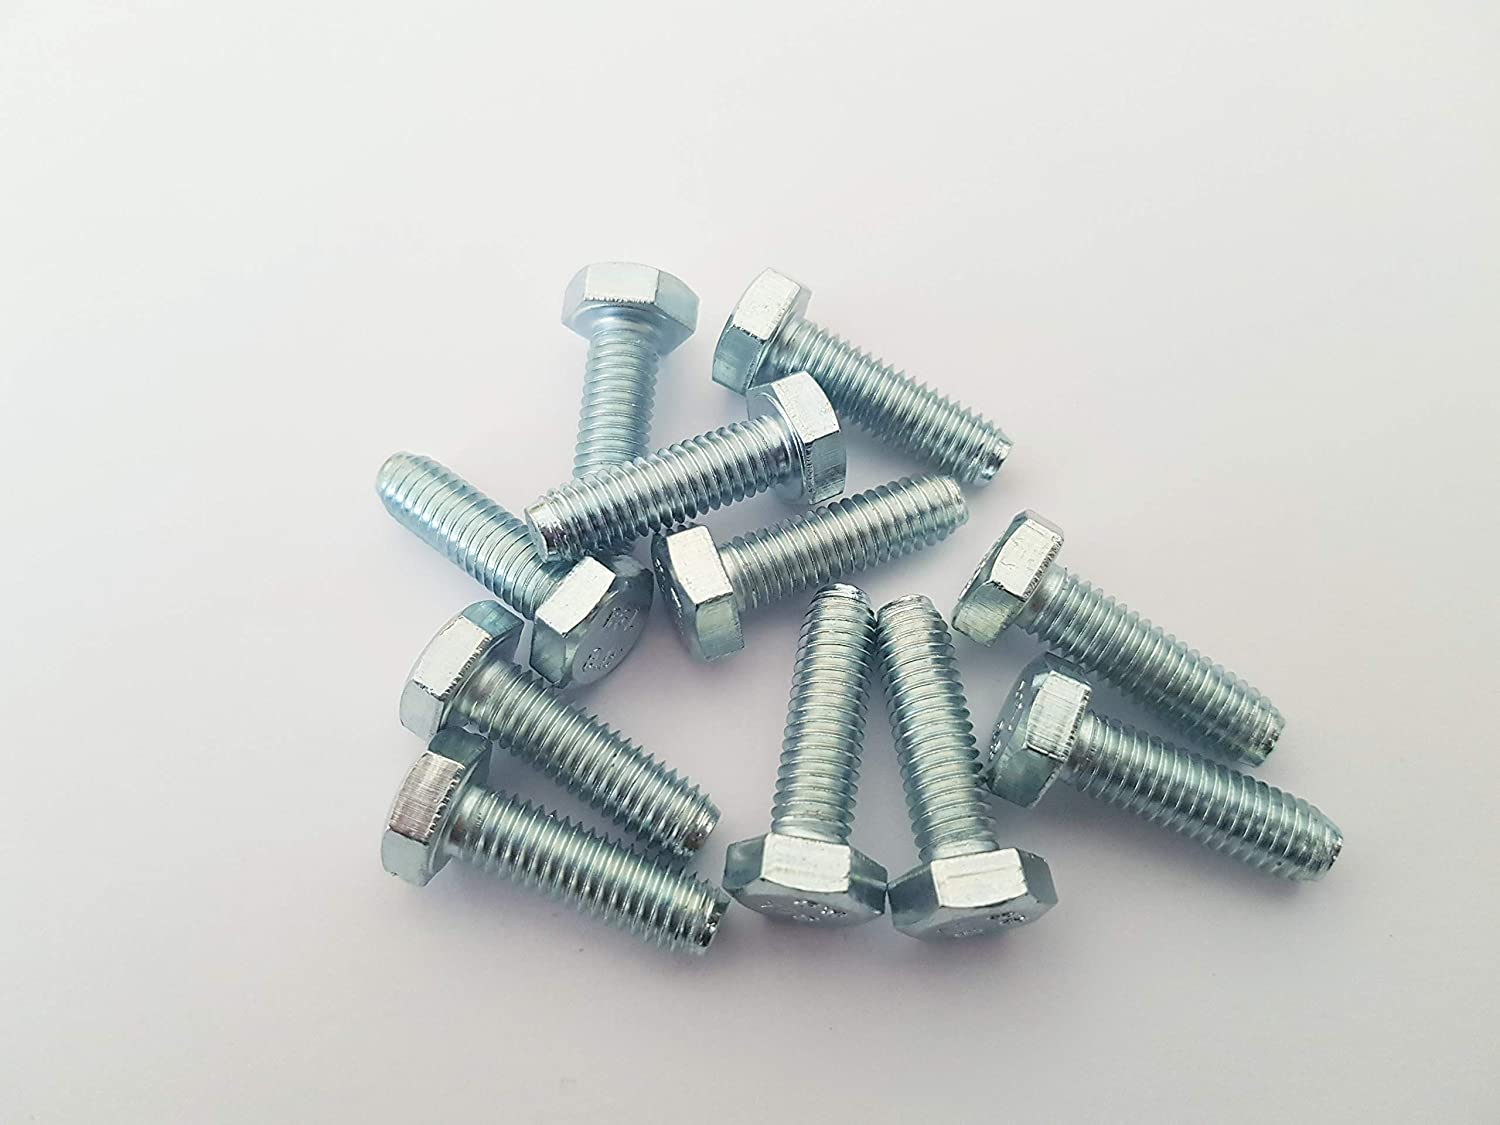 ZINC Plated 5mm x 25mm M5 HEX Bolt Pack of 50 Fully Threaded SETSCREW